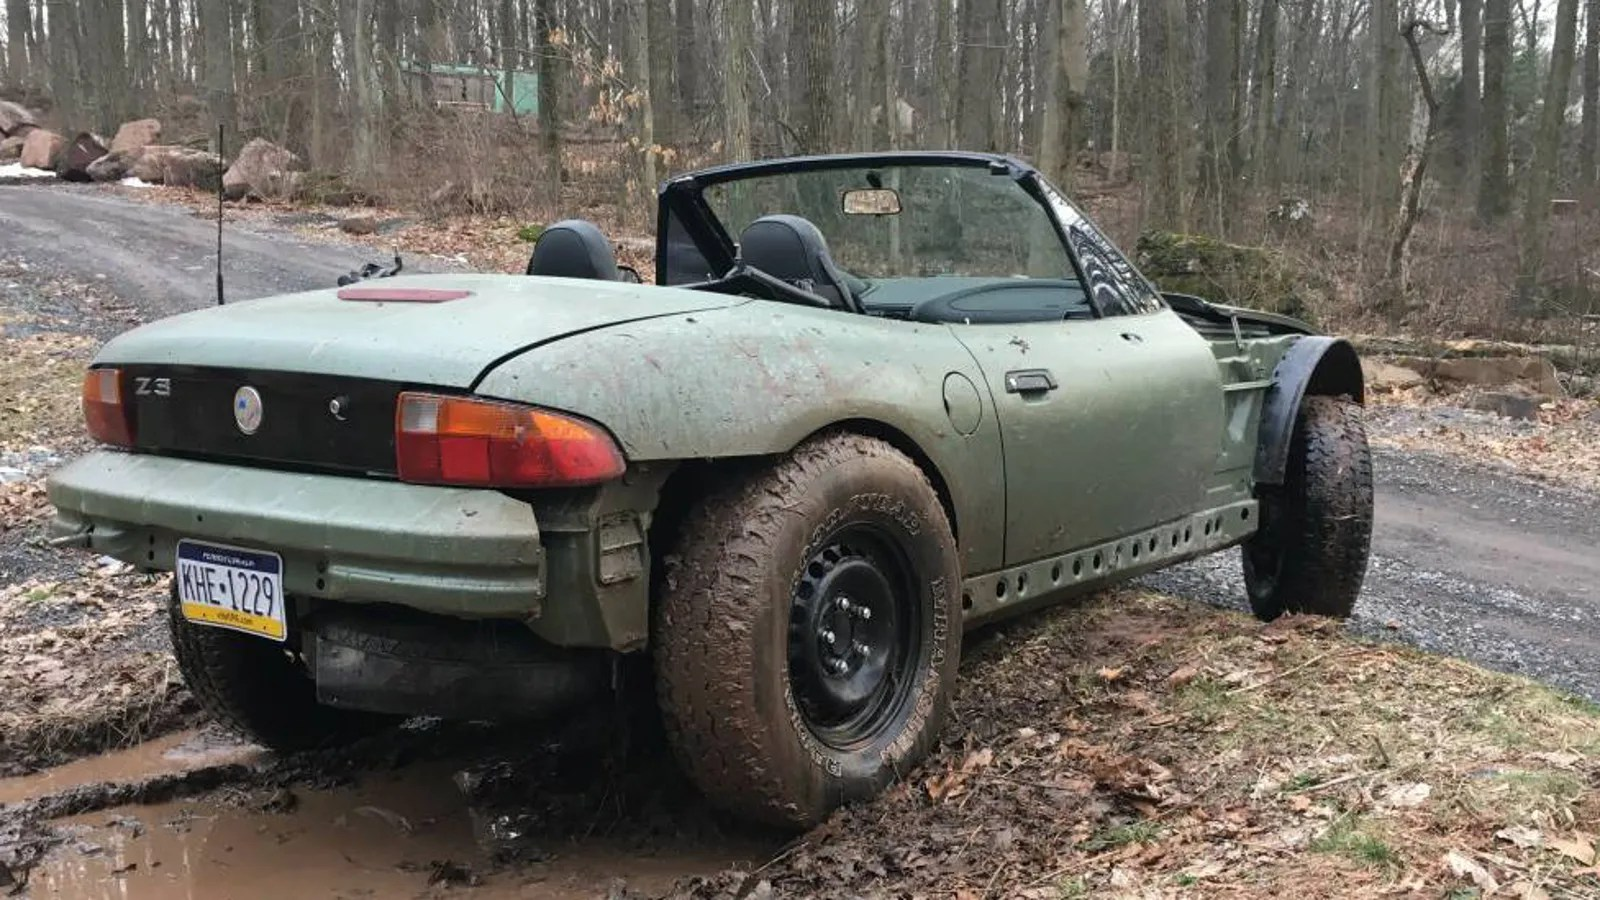 hight resolution of good afternoon i have discovered the best bmw z3 it is this nasty off road beast